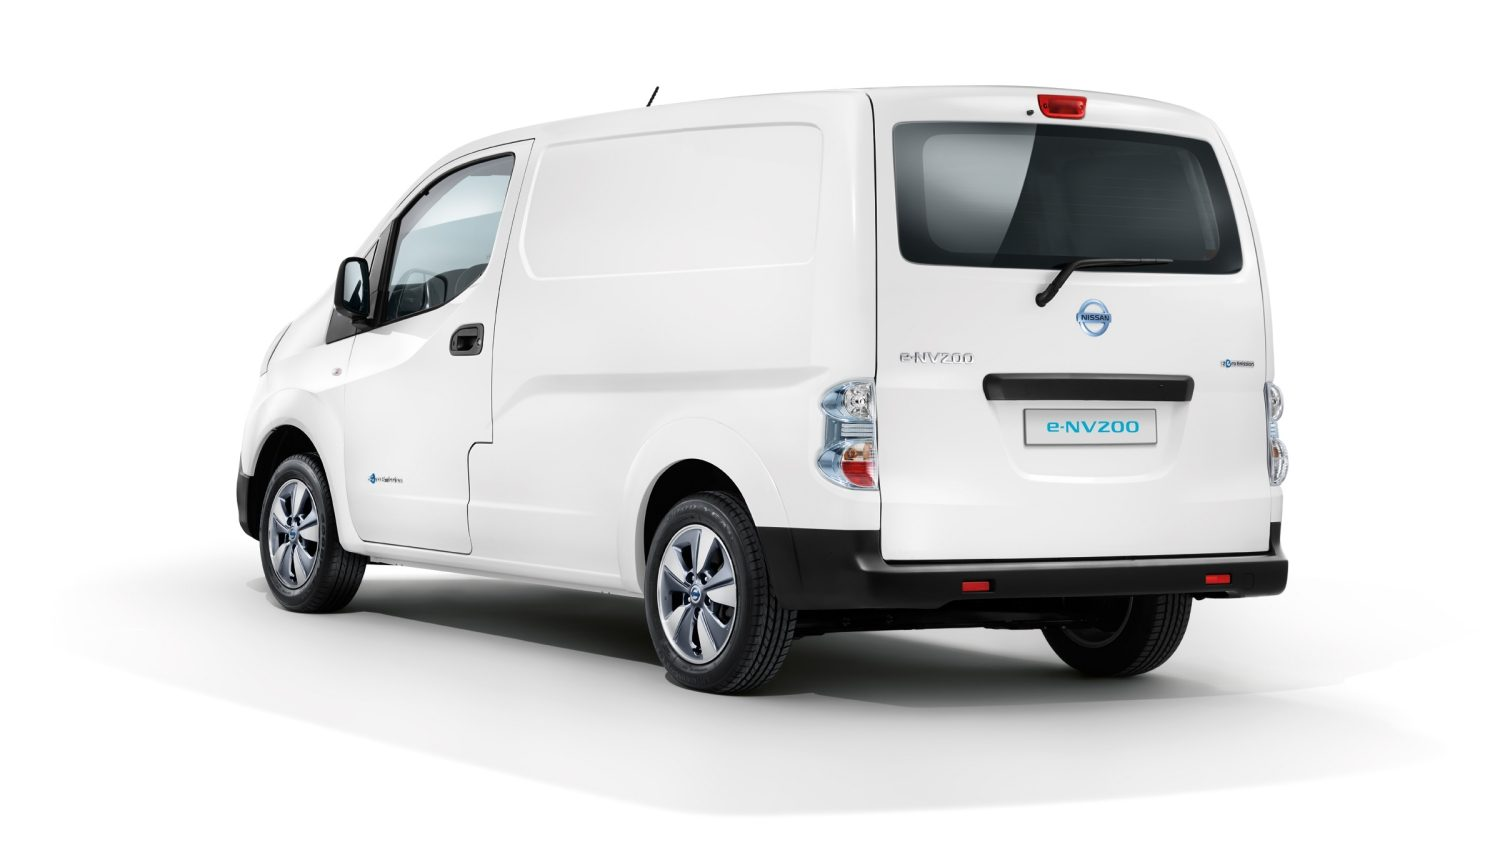 design nissan e nv200 electric van nissan. Black Bedroom Furniture Sets. Home Design Ideas